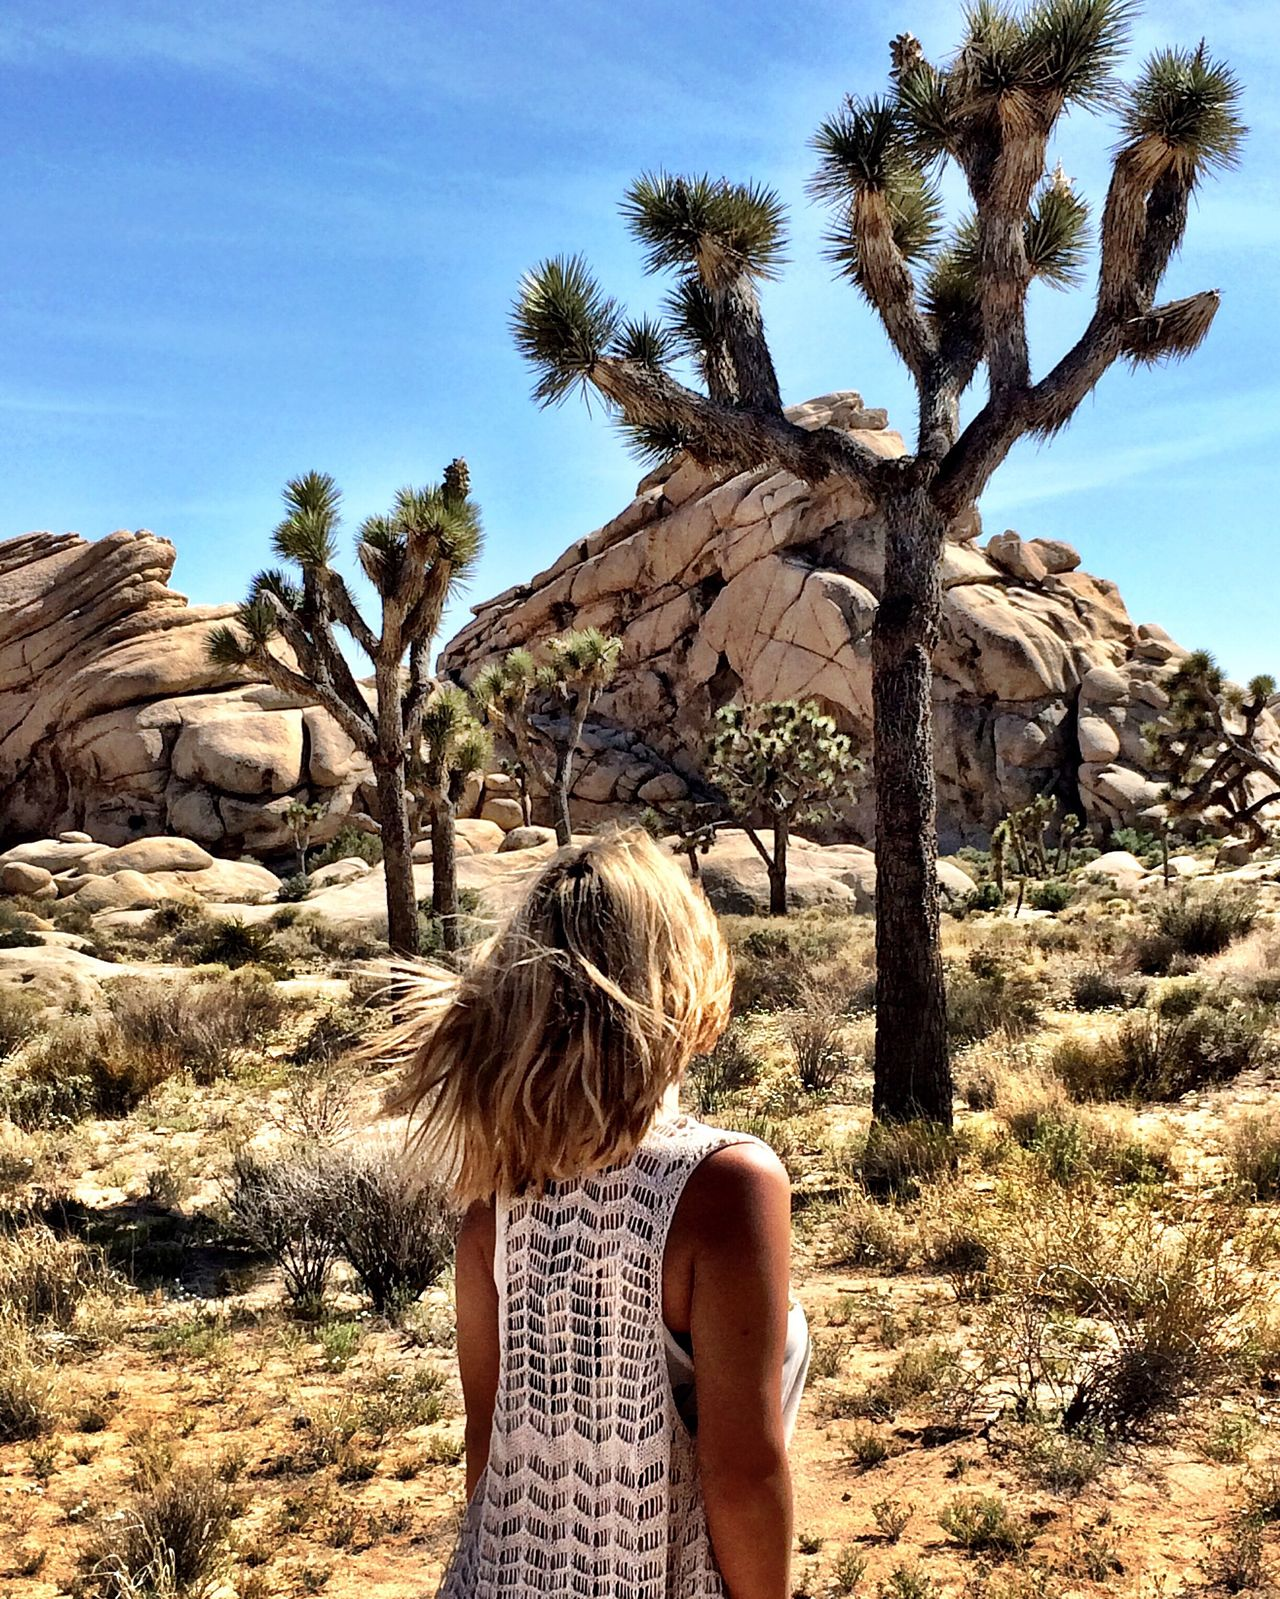 Beautiful stock photos of walk, 25-29 Years, Arid Climate, Beauty In Nature, Blond Hair